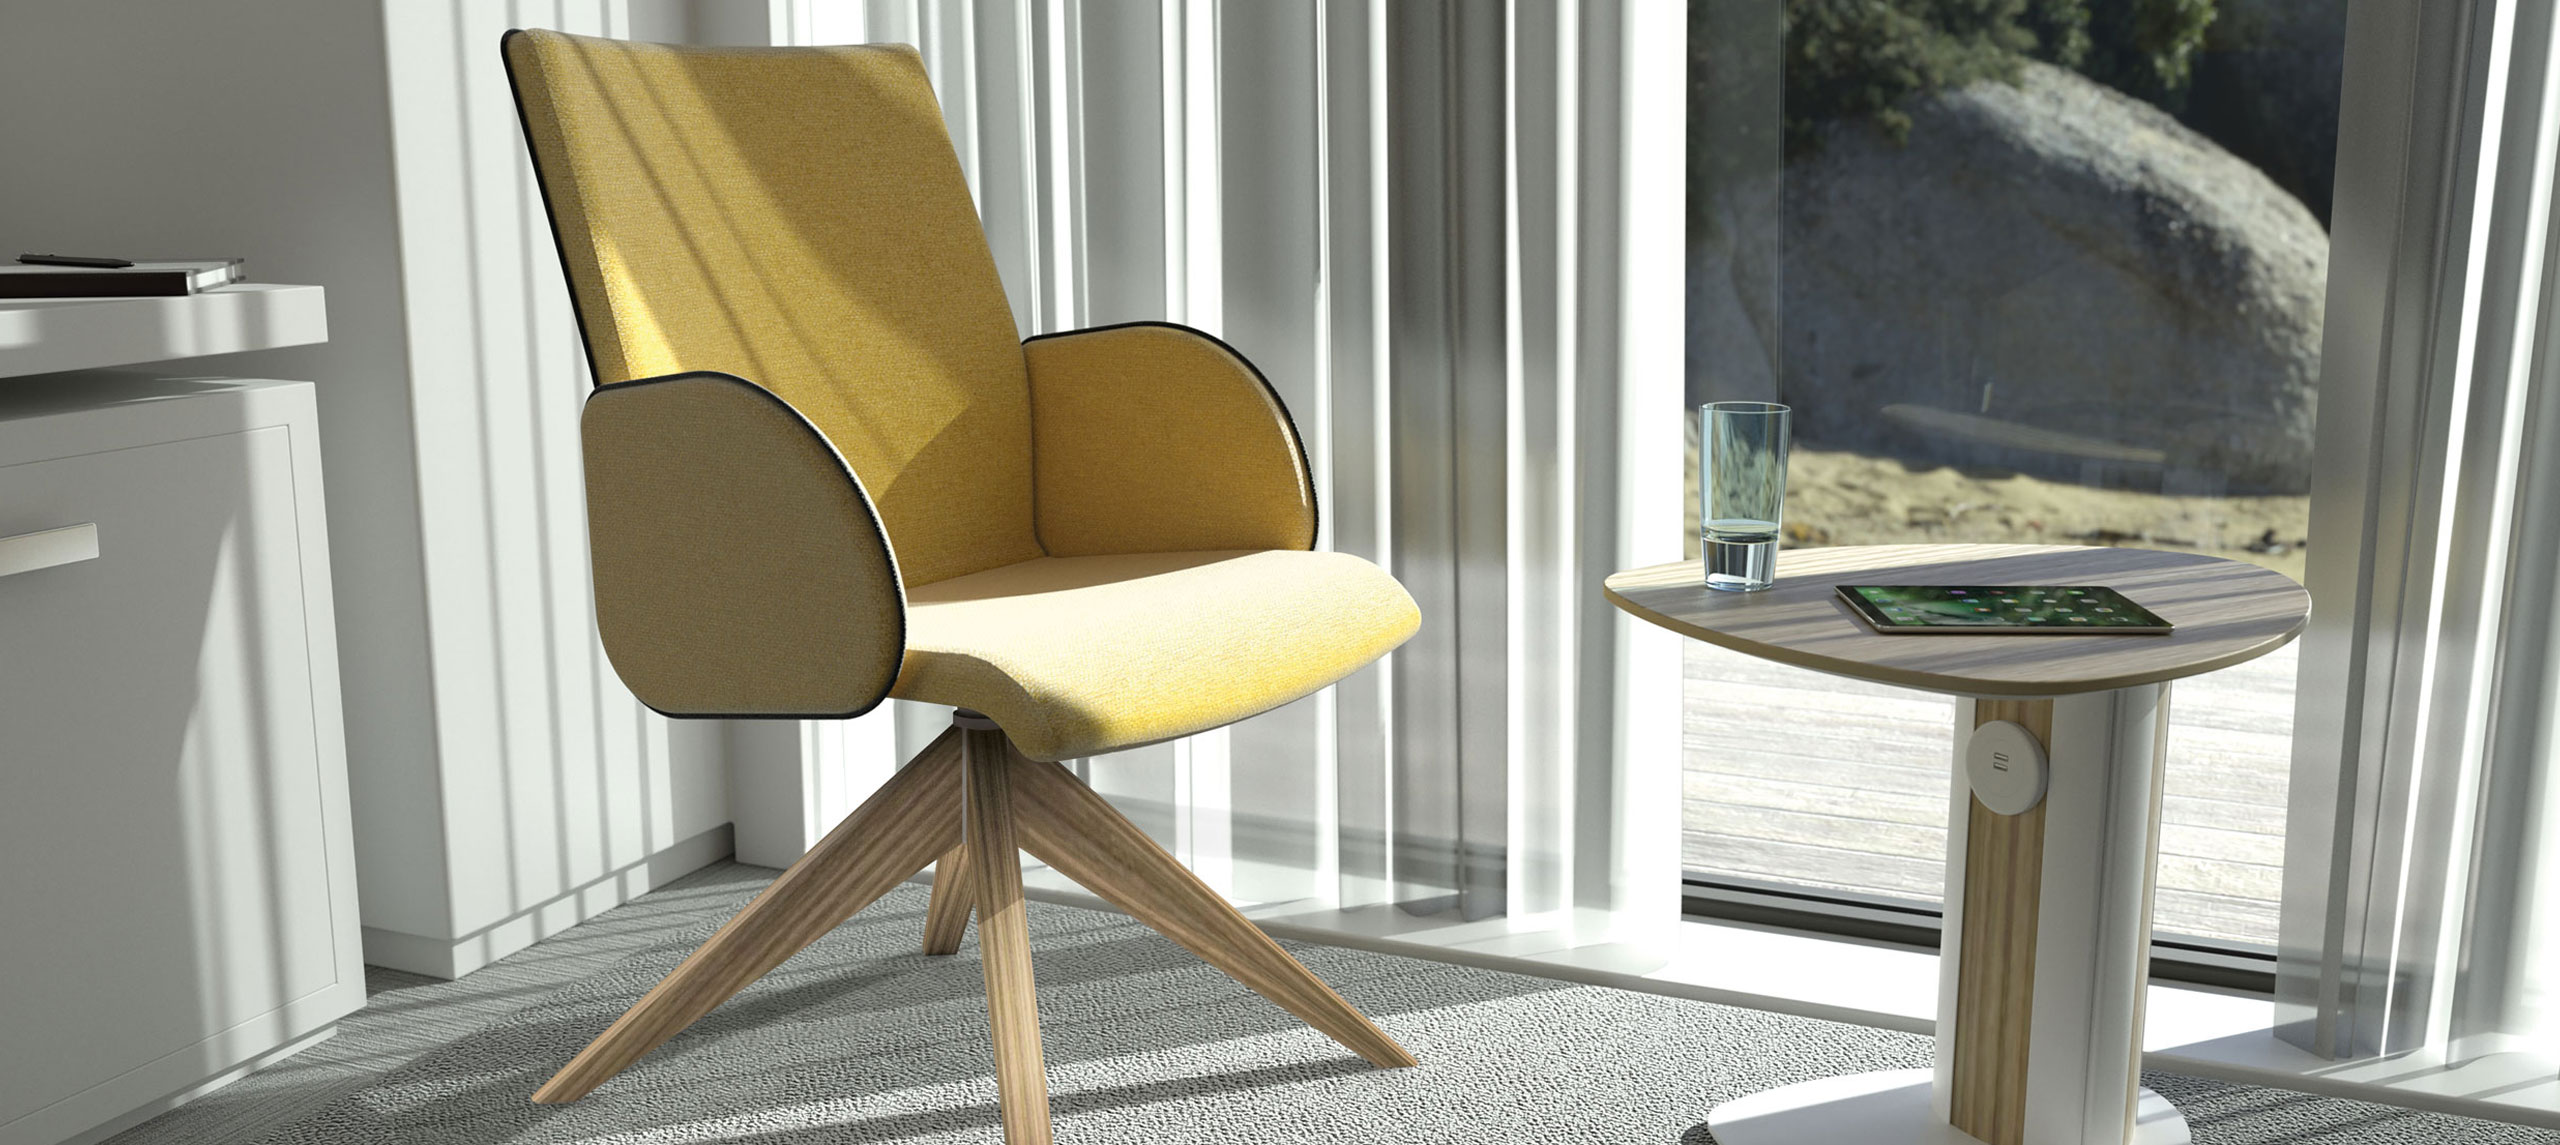 CasuElle 19/5 4 Star Wooden Base Chair Bedroom